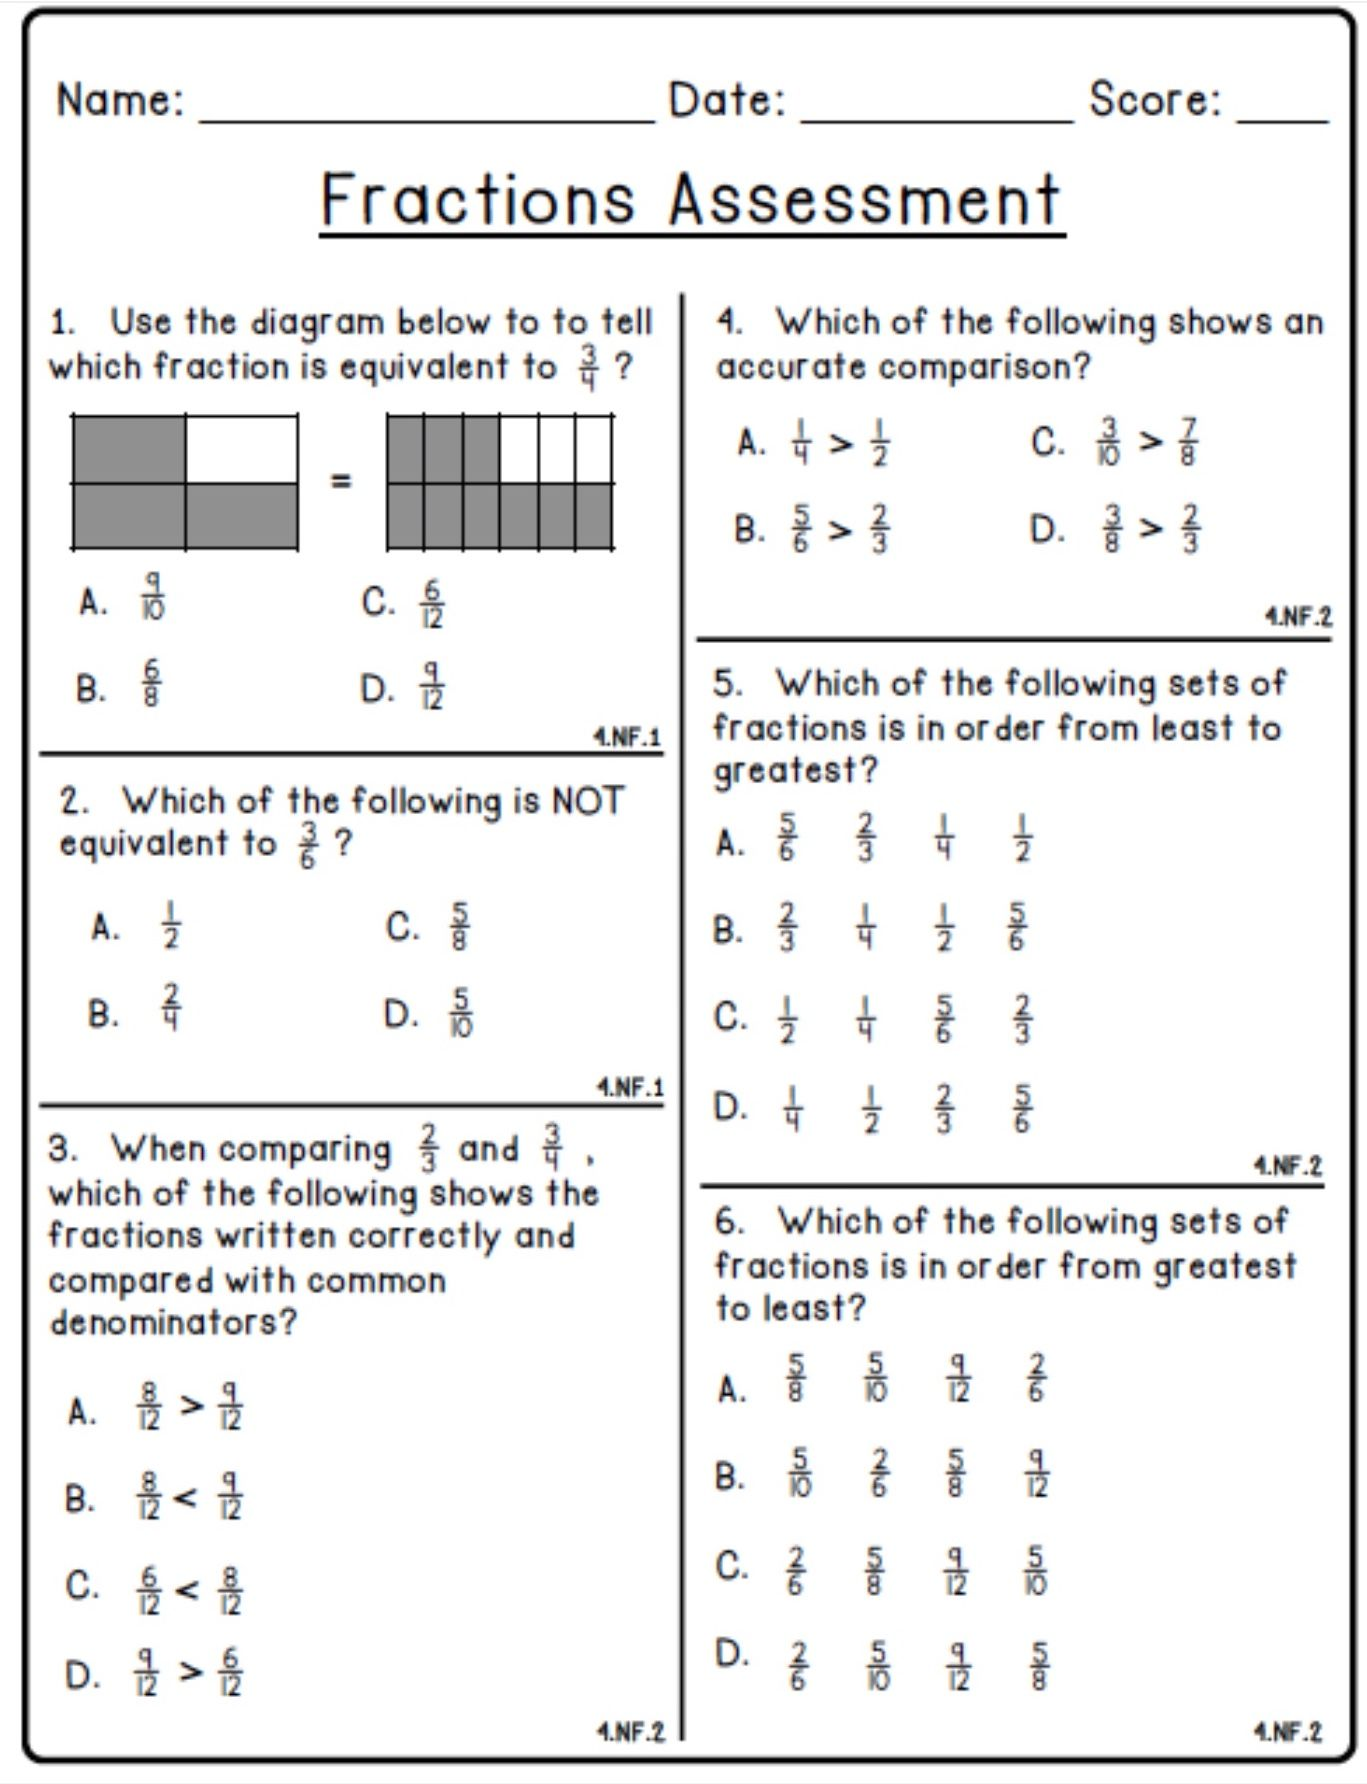 Pin By Saundra Eldridge On Fractions 4th Grade Math Worksheets Math Fractions Math Fractions Worksheets